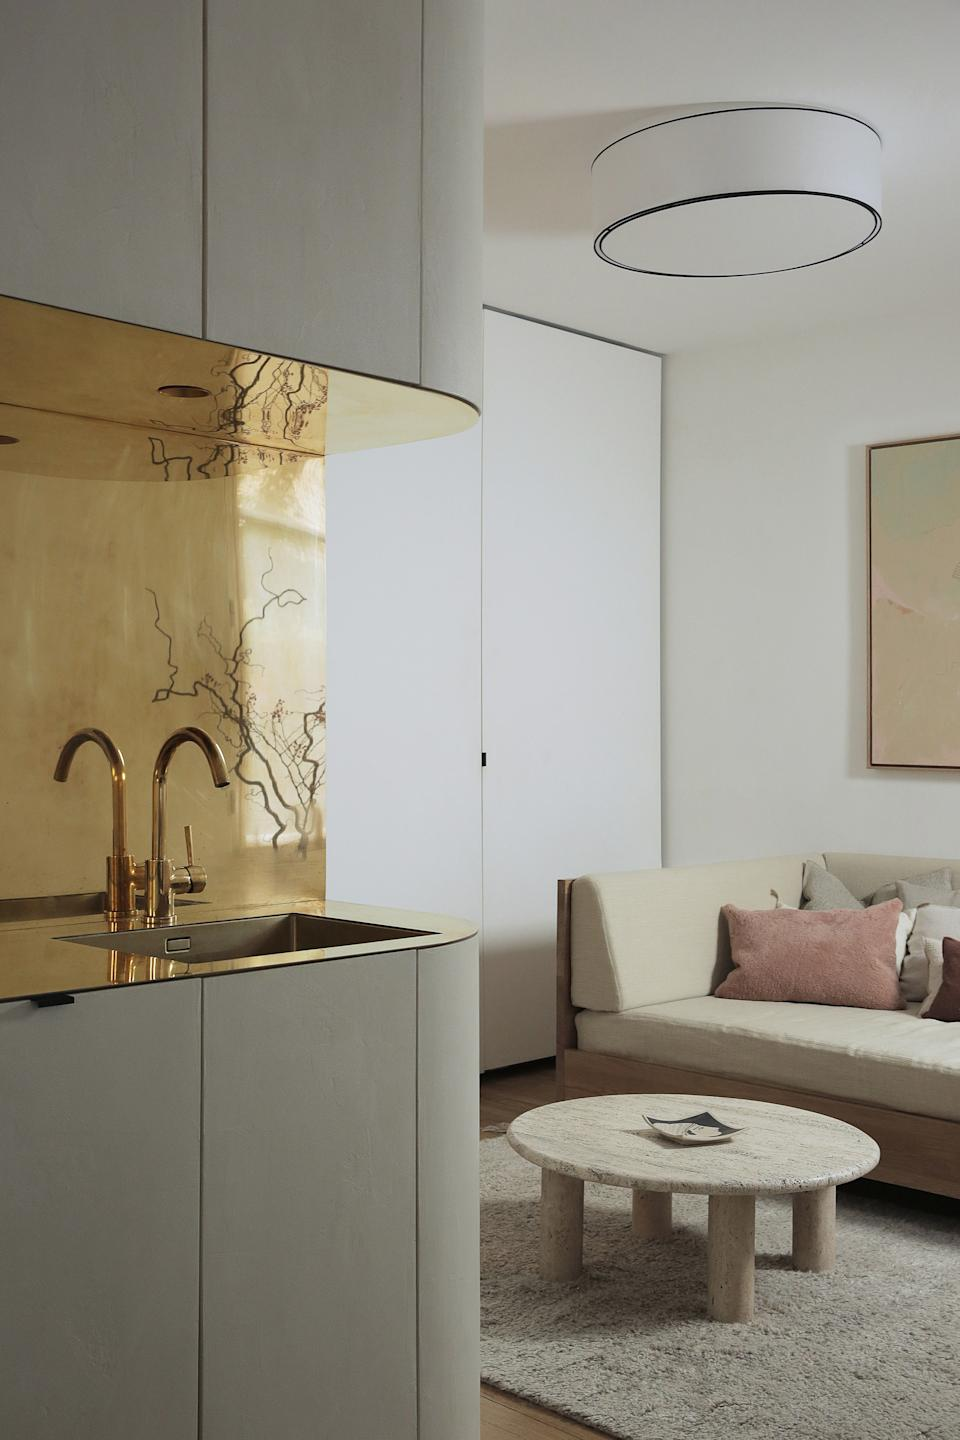 """<div class=""""caption""""> On the other side of the space is a sleeping area with a daybed dressed with oatmeal-colored linen bedding that matches the cushions on the dinette that continue the warm, neutral tones and natural textures. </div>"""